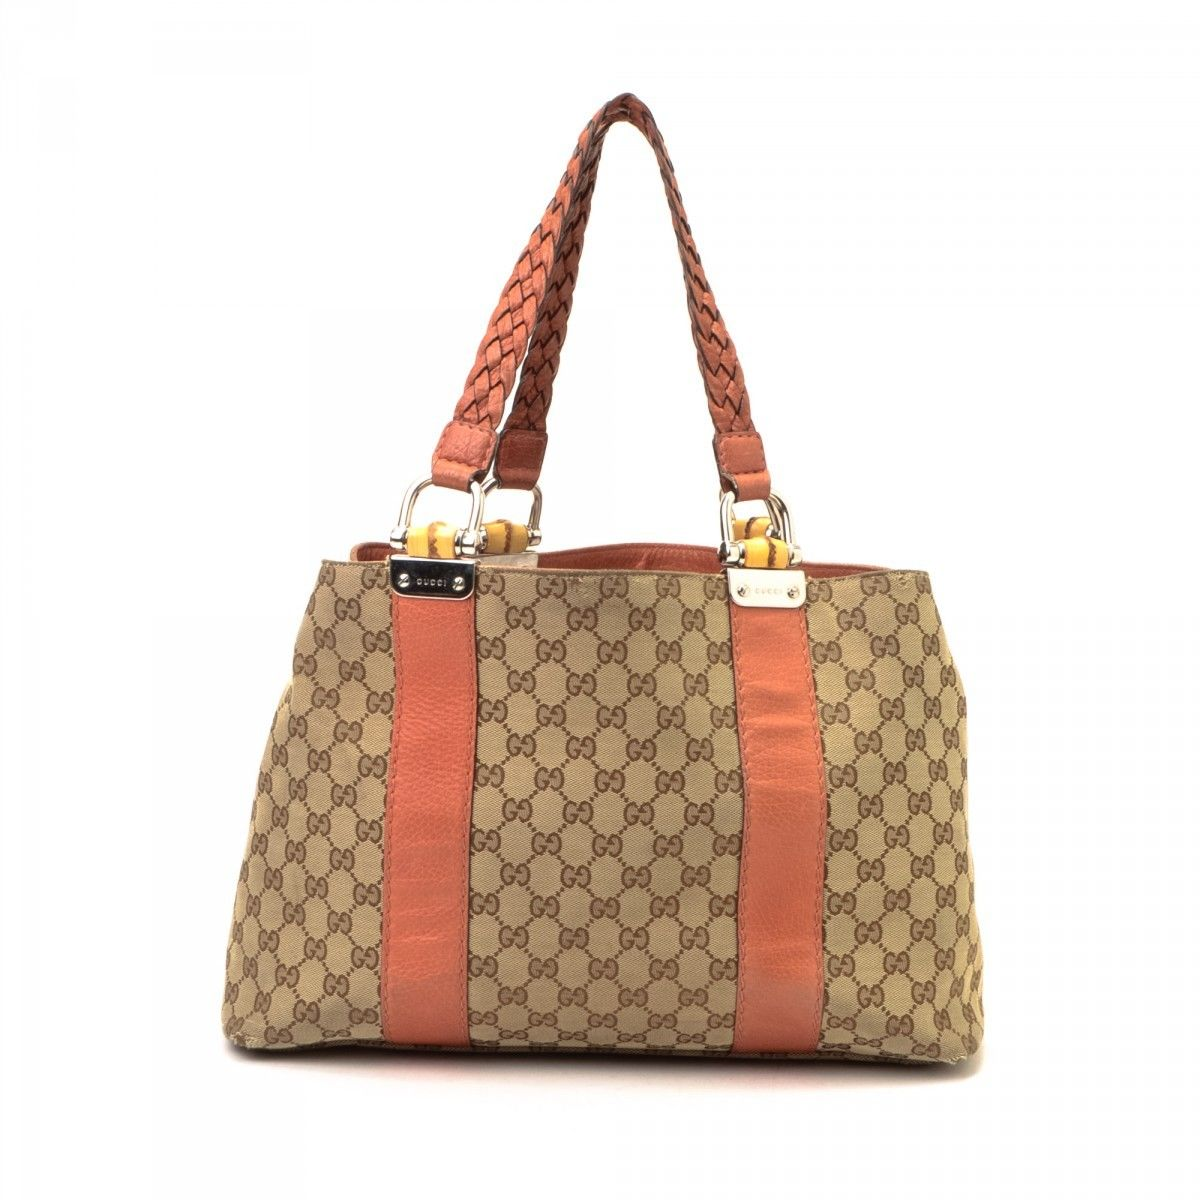 80178f504be Gucci Bamboo Bar Tote. LXRandCo guarantees this is an authentic vintage  Gucci Bamboo Bar tote. This beautiful work bag in beige is made in gg canvas .